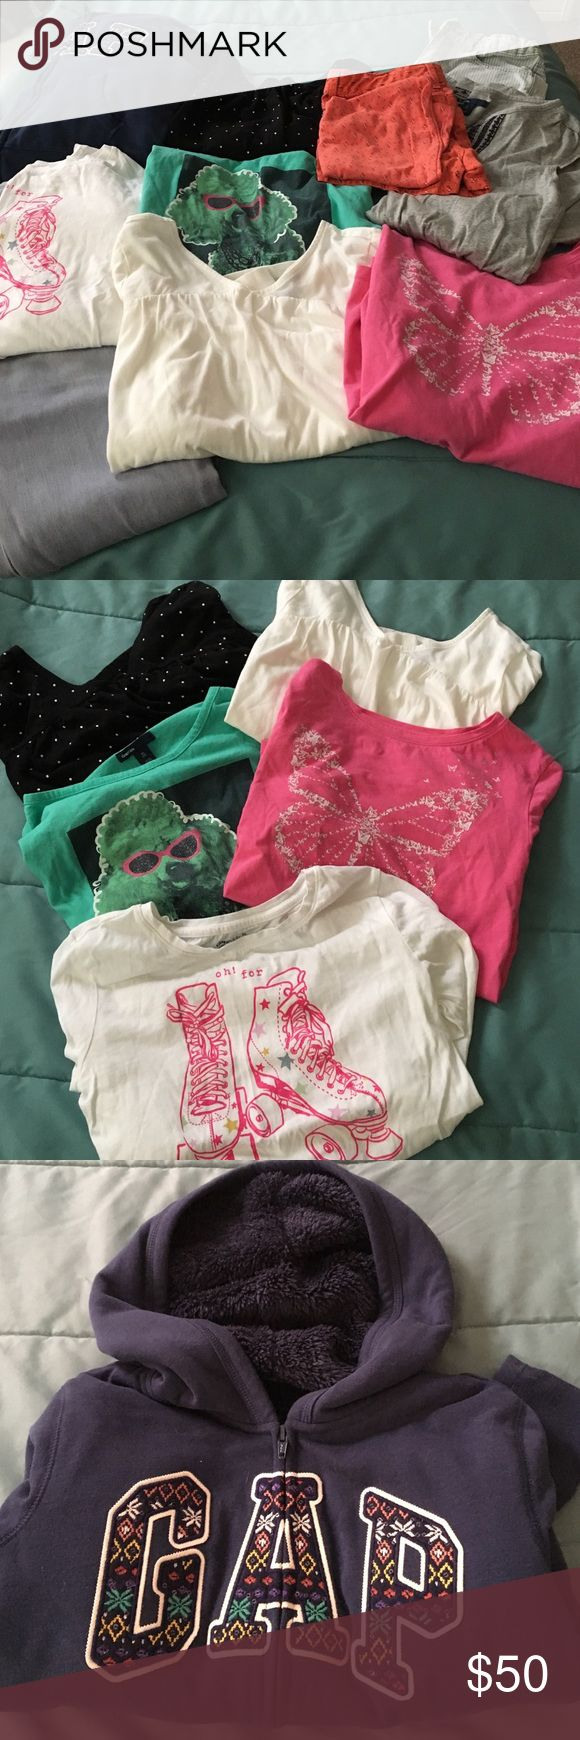 Girls size 12 GAP clothing bundle GAP clothing bundle.  Girls size 12 (L). 5 long sleeve shirts, fur lined jacket, 1 pair of jeans, 1 short sleeve dress, 2 pair of shorts and tank top. GAP Other